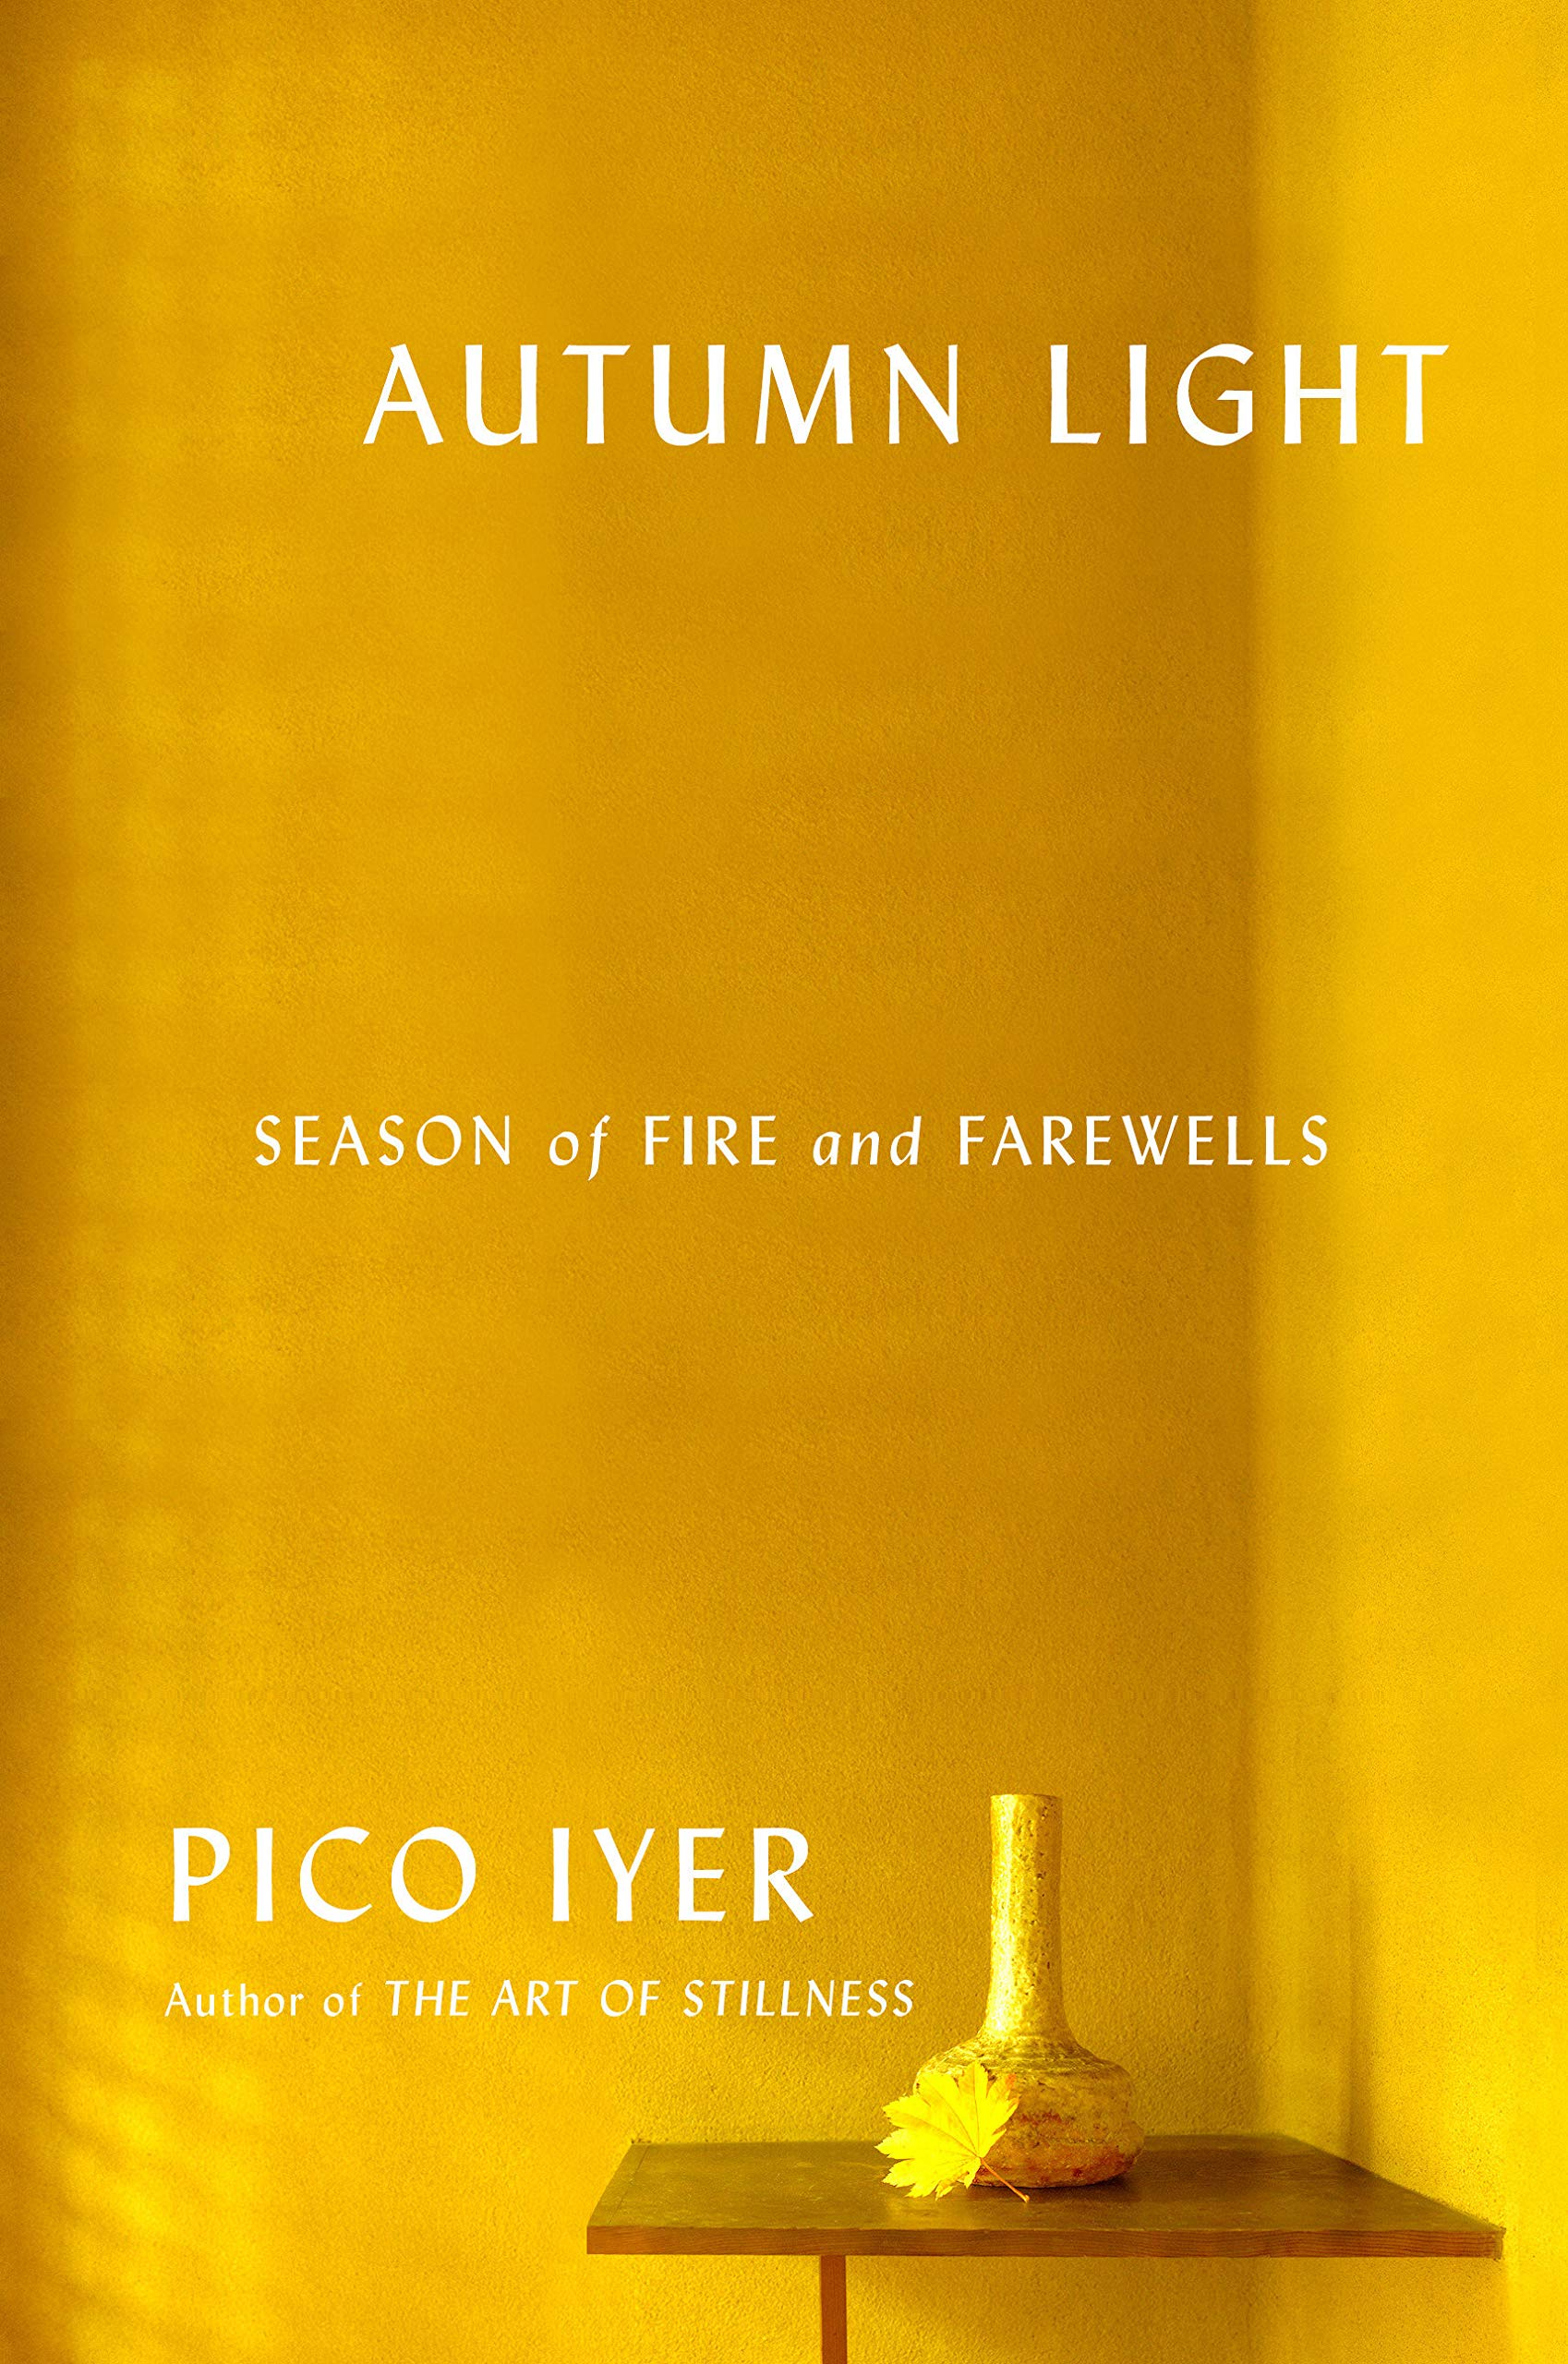 Autumn Light: Season of Fire and Farewells Hardcover – Deckle Edge, April  16, 2019